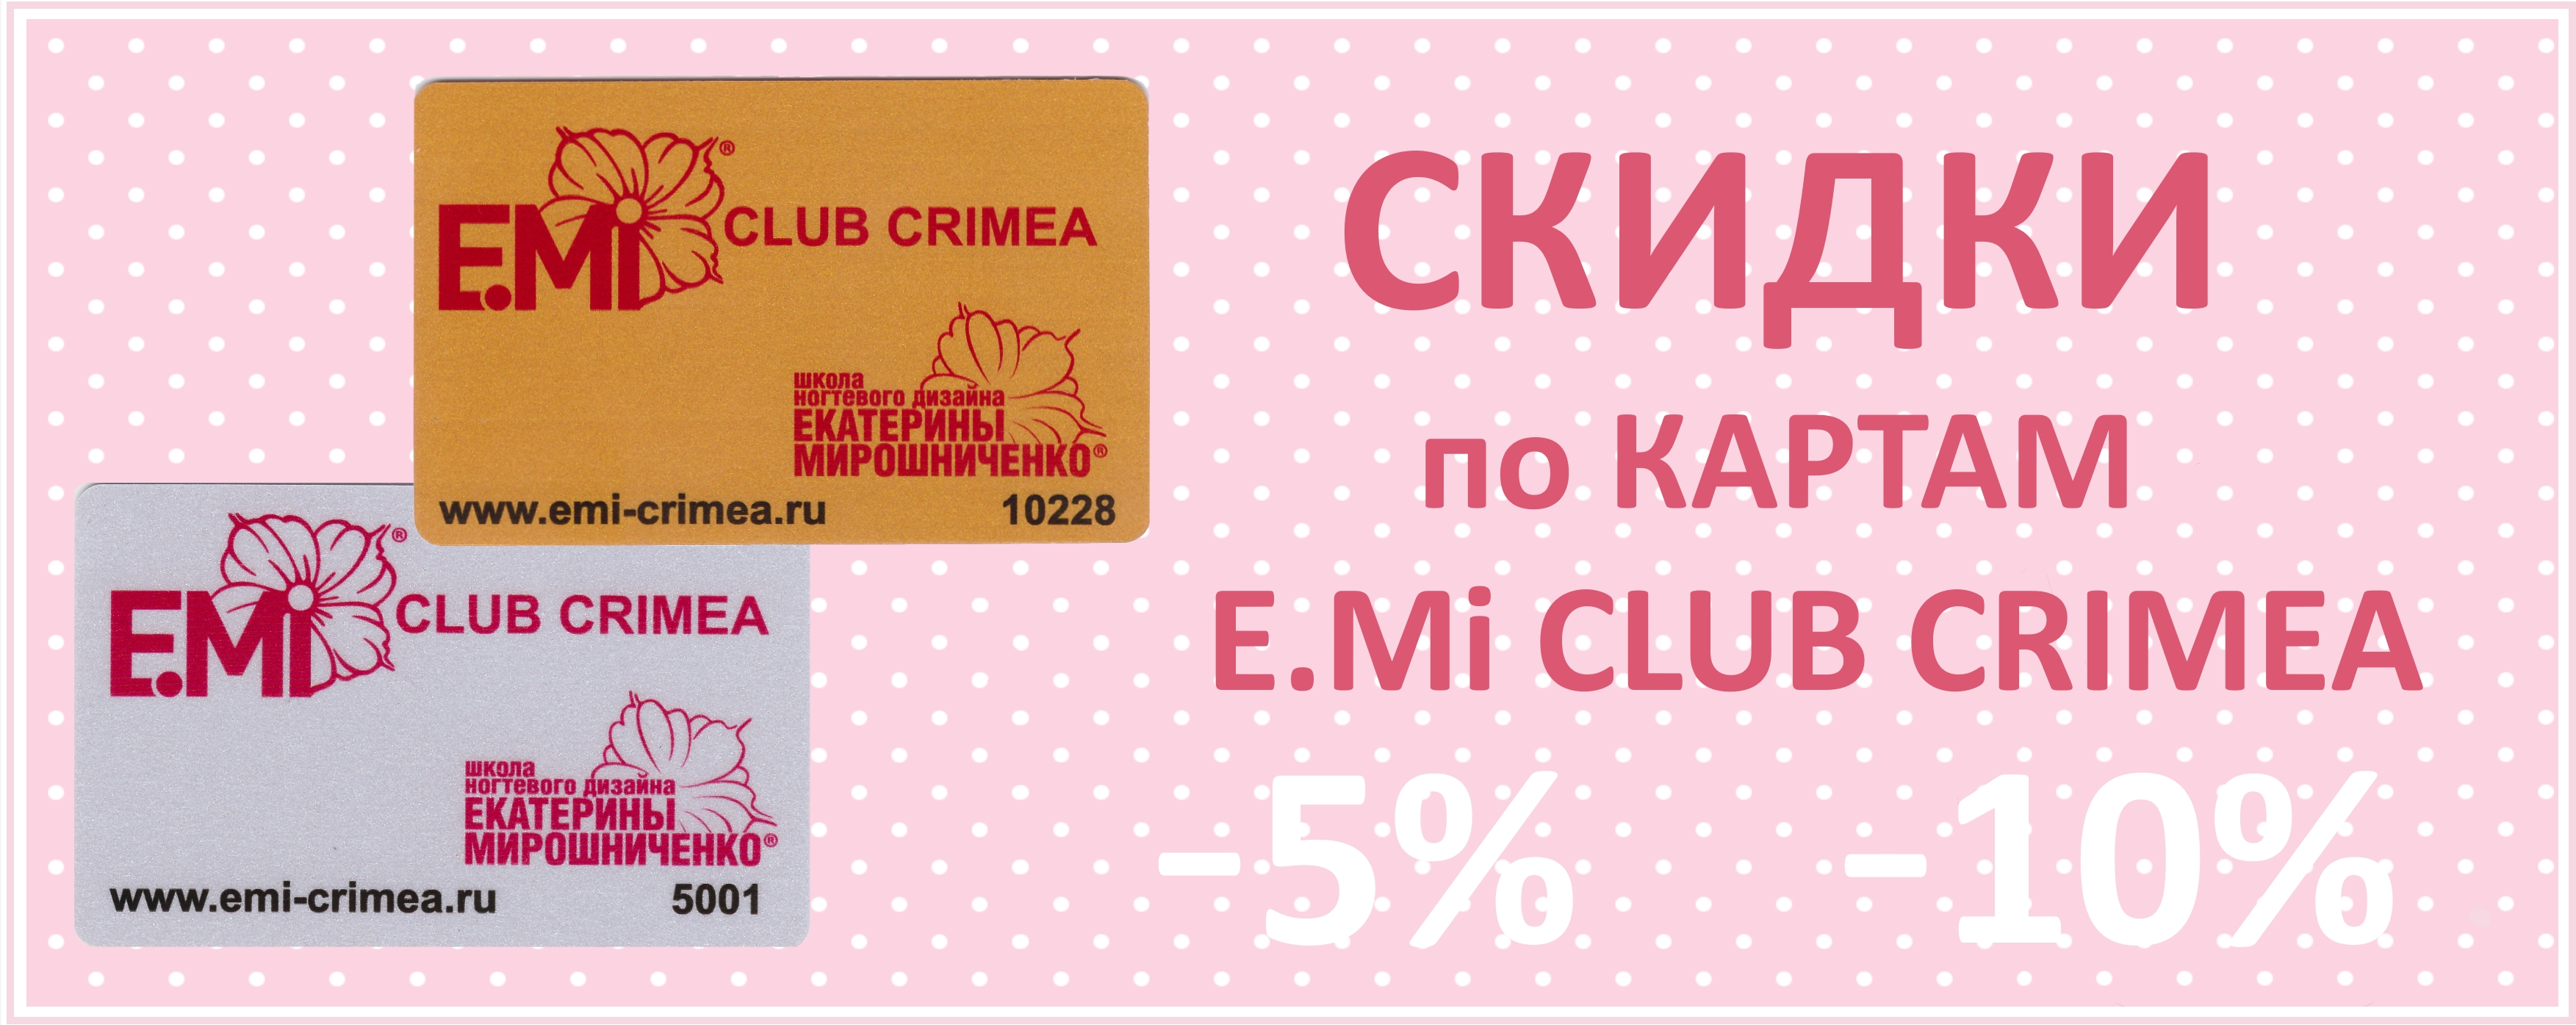 EMi Club Crimea